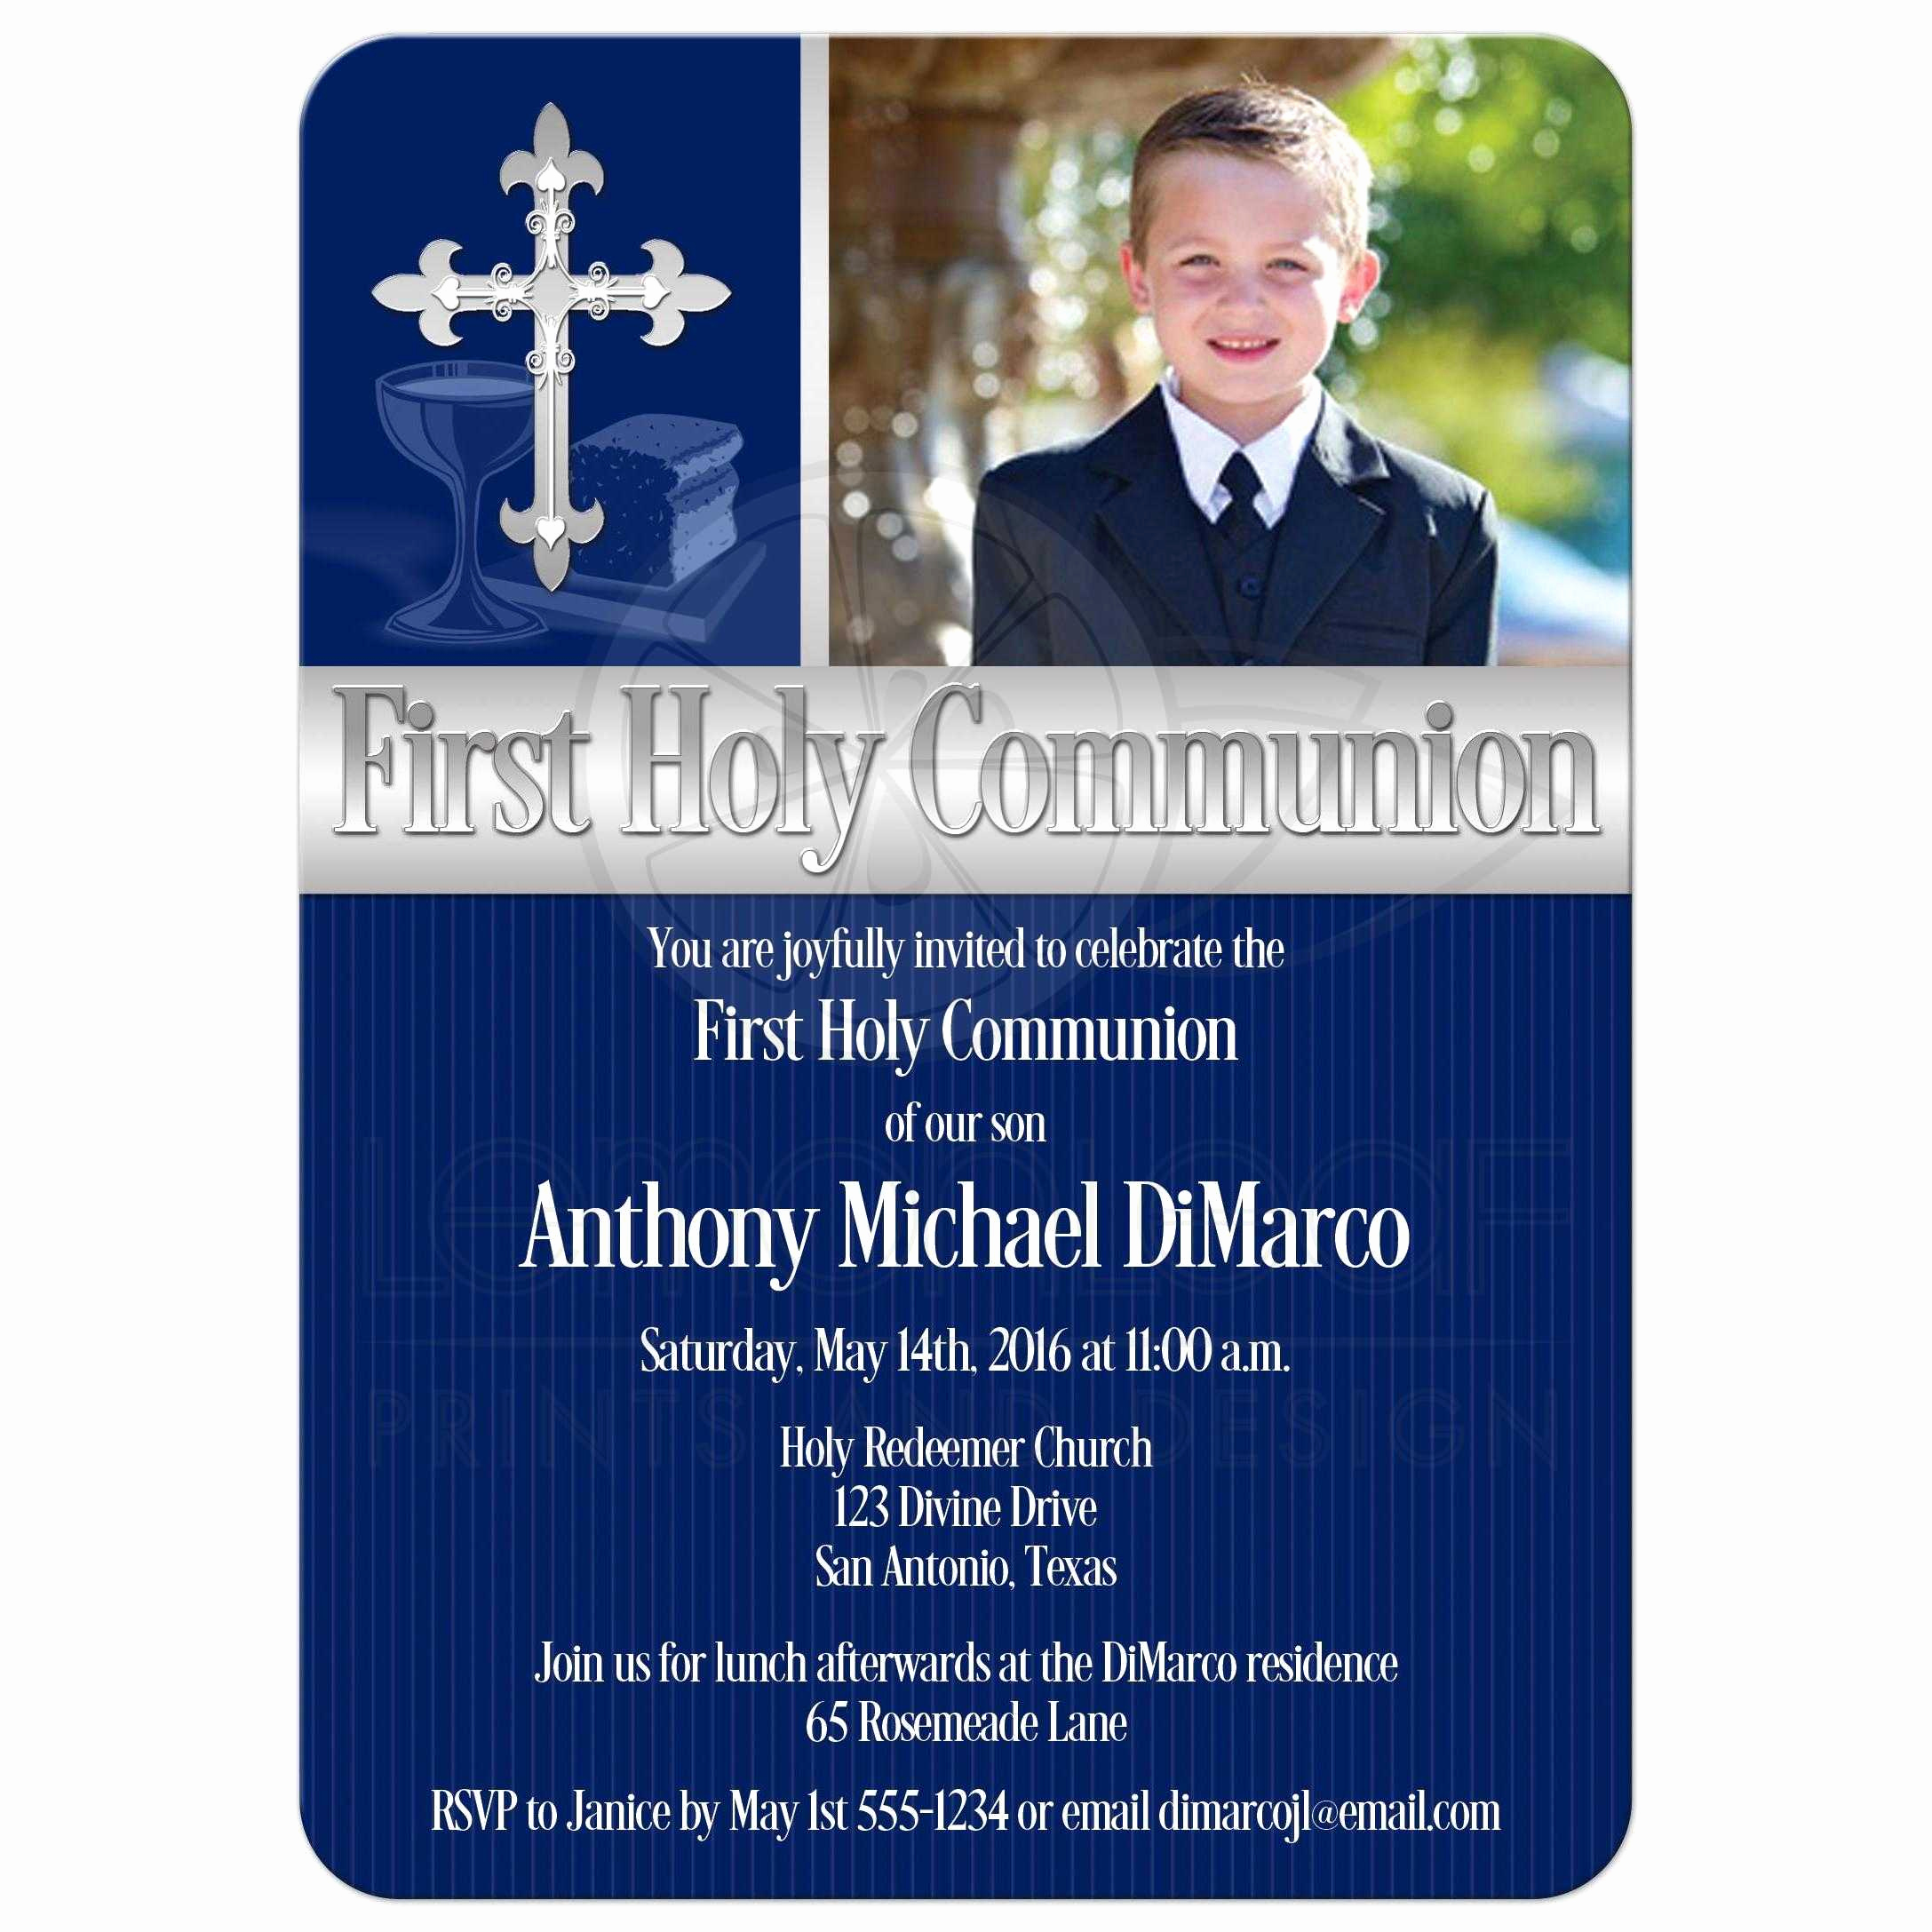 First Communion Invitation Templates Lovely First Holy Munion Invitation Template